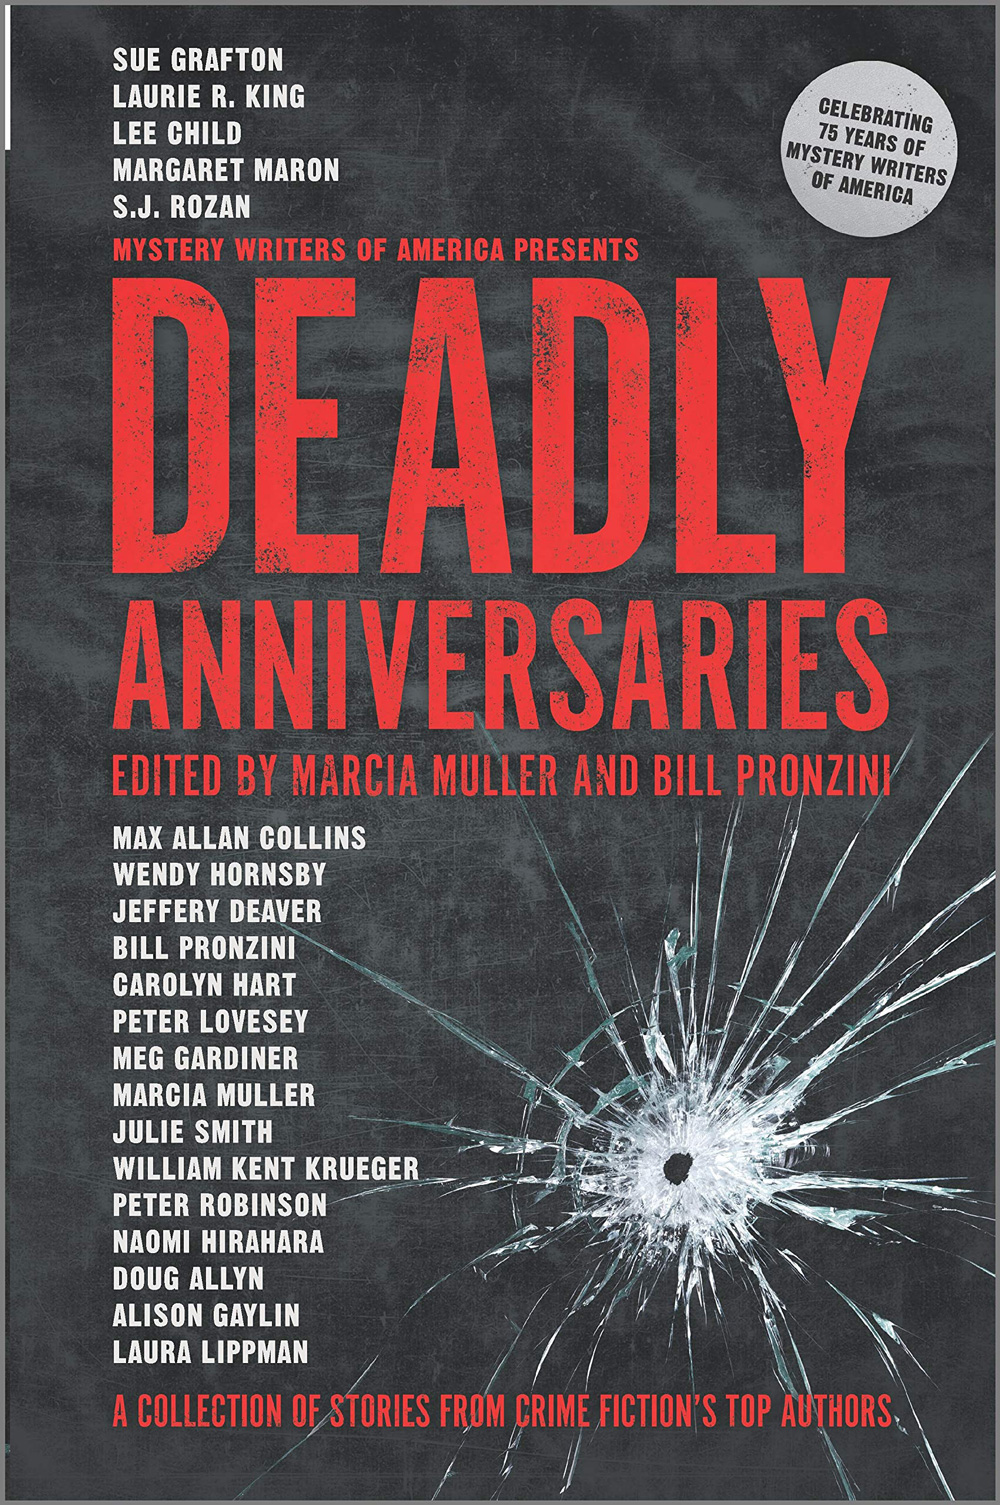 """Deadly Anniversaries"" edited by Marcia Muller and Bill Pronzini"